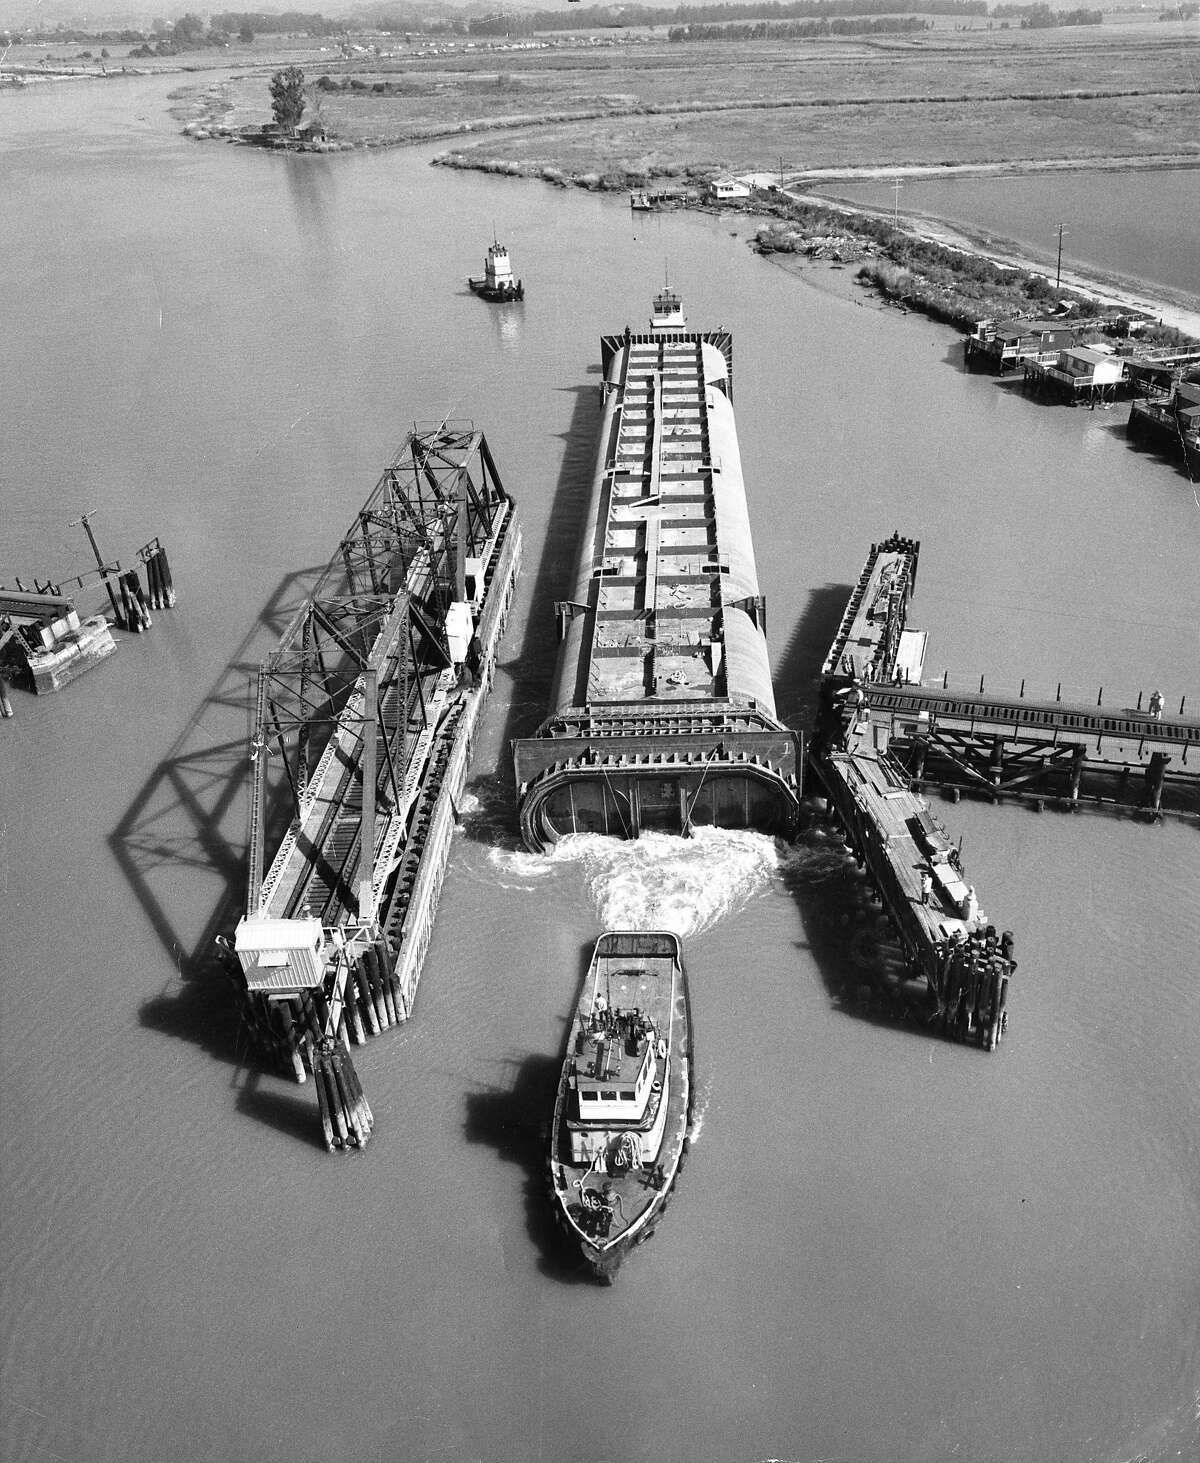 April 28, 1968: A section of the BART tube is towed down the Napa River after being fitted with a flexible seismic protection joint at Kaiser Steel's Napa plant.